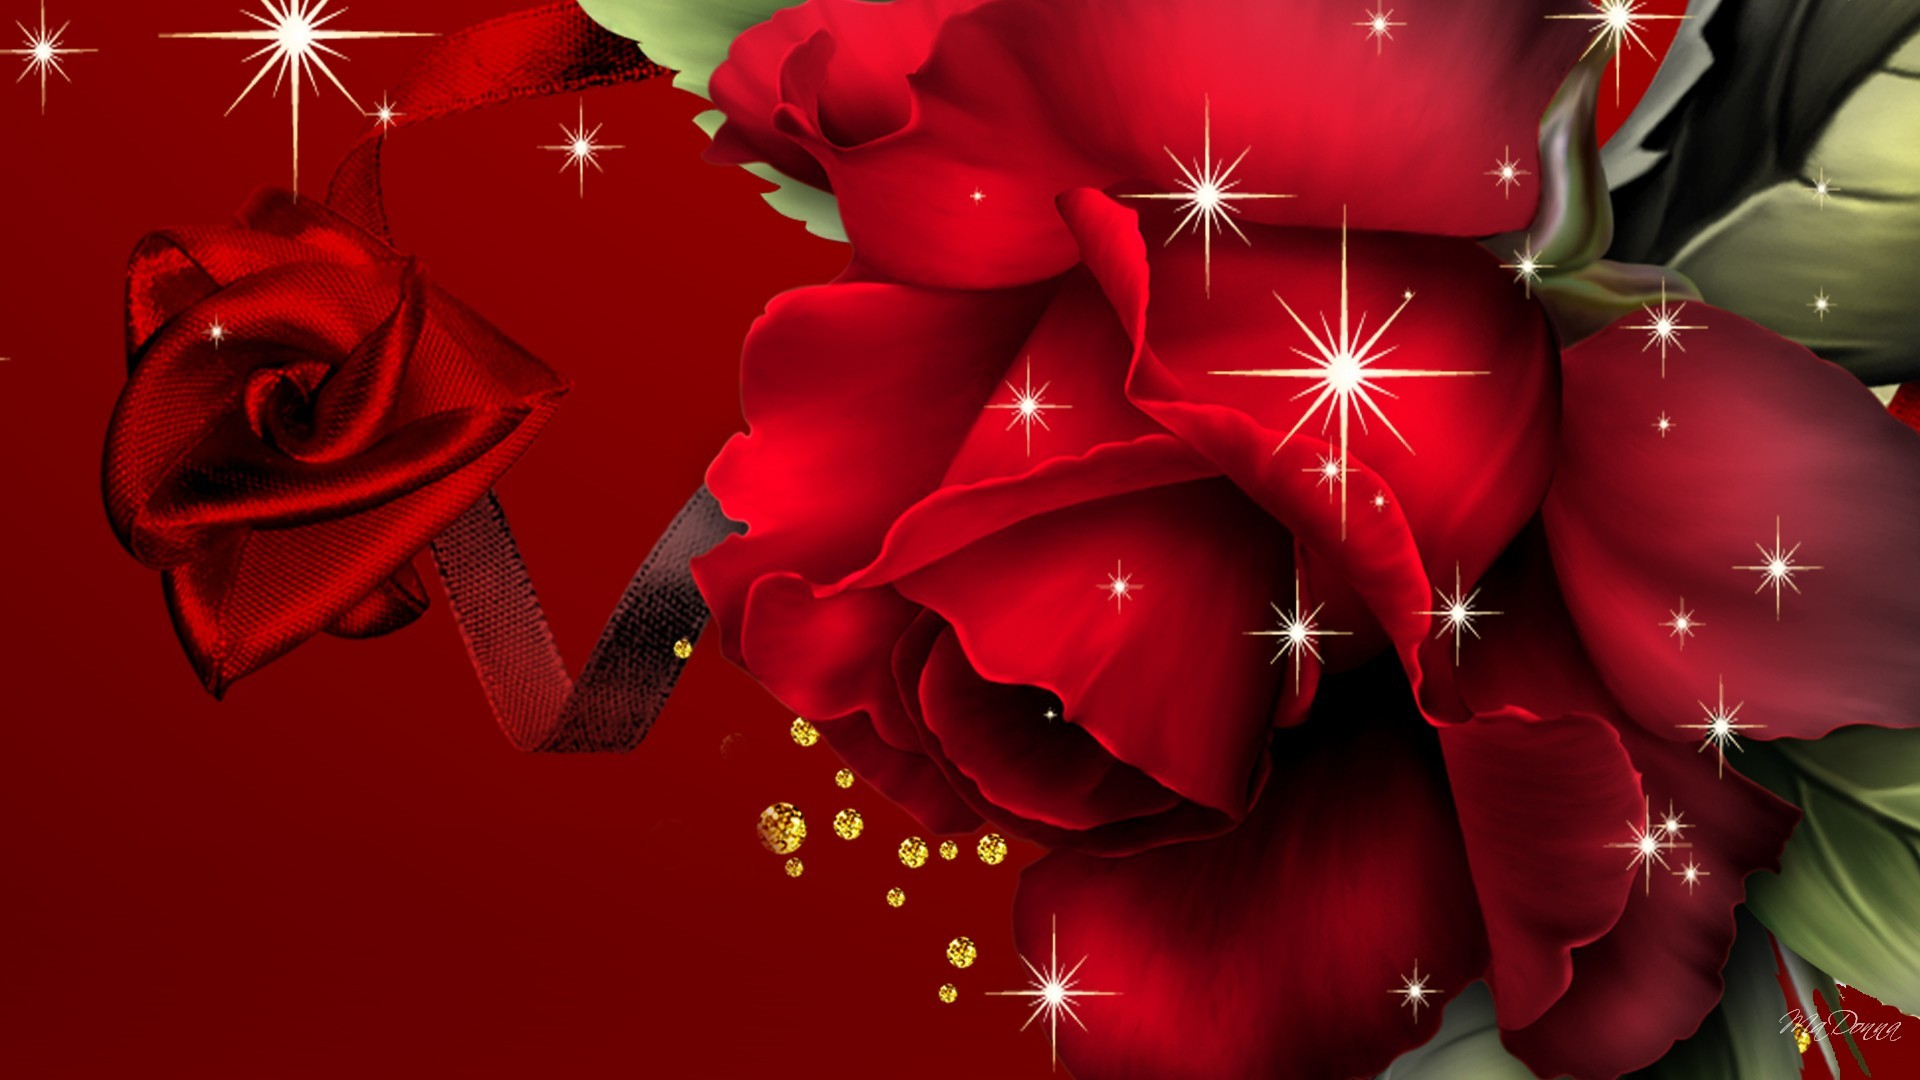 Res: 1920x1080, big-red-roses-free-wallpapers-hd